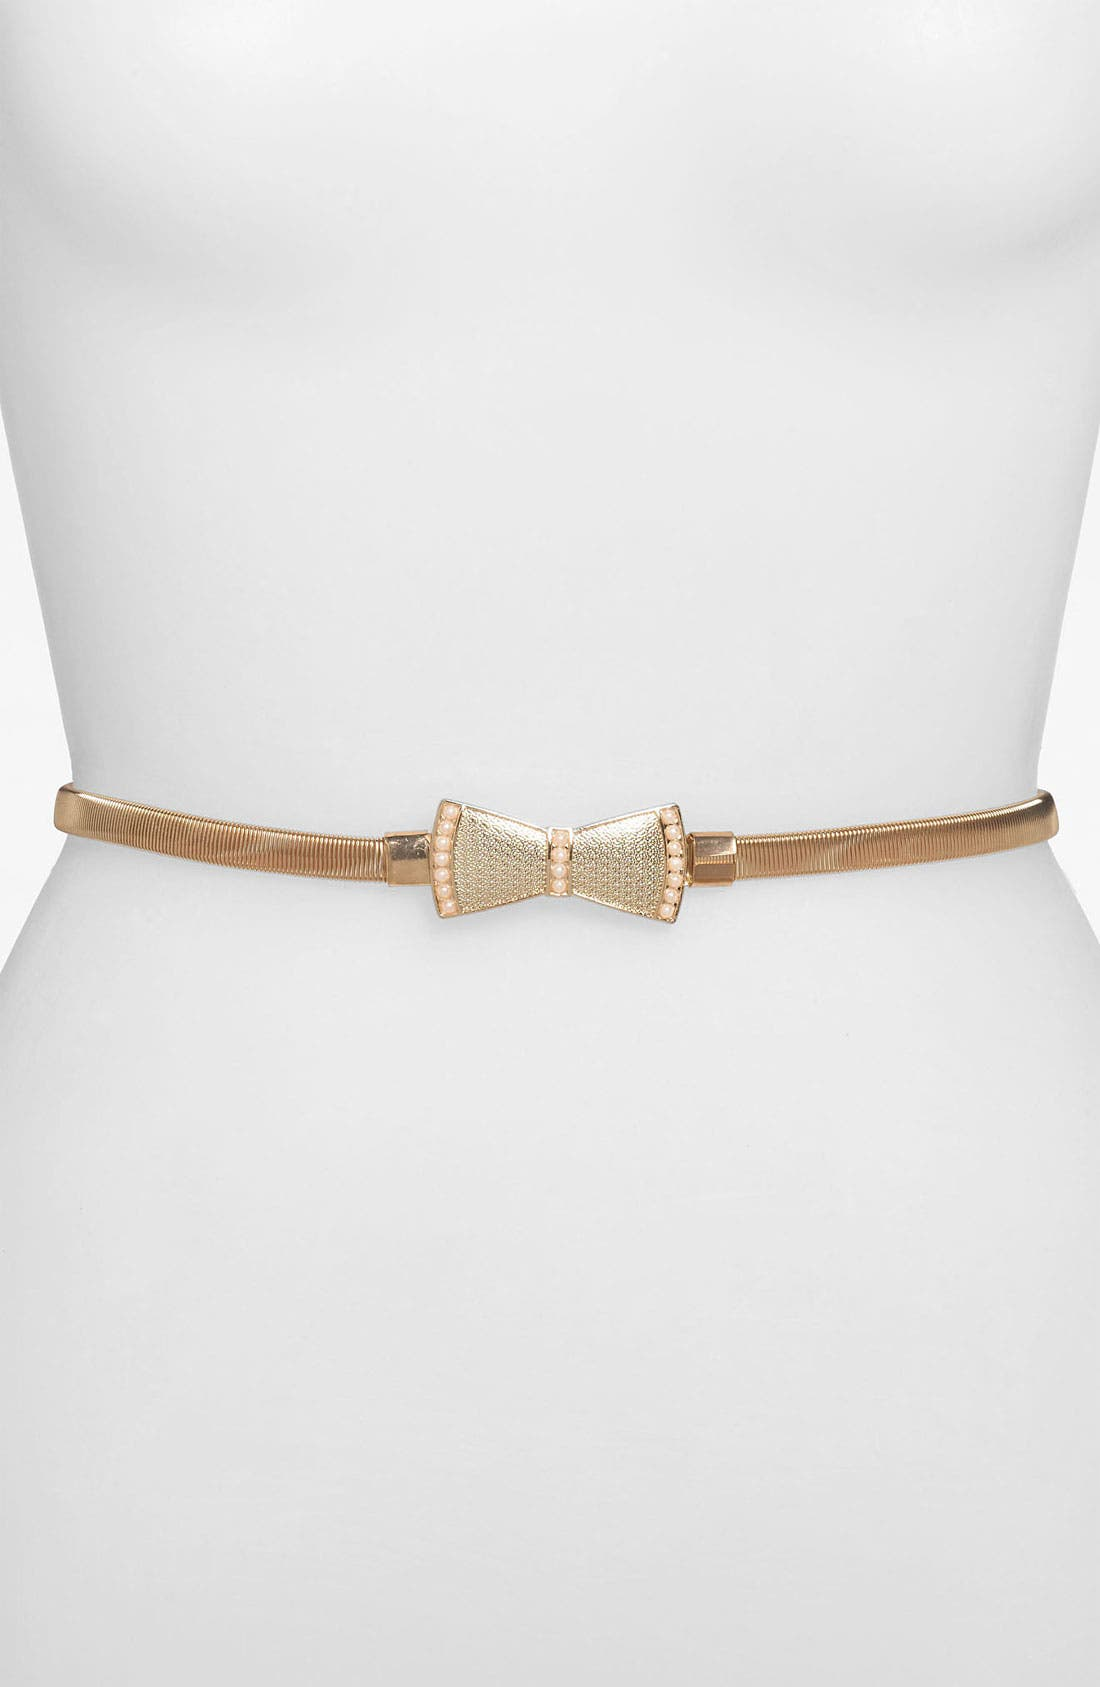 Alternate Image 1 Selected - Lulu Pearl Bow Stretch Belt